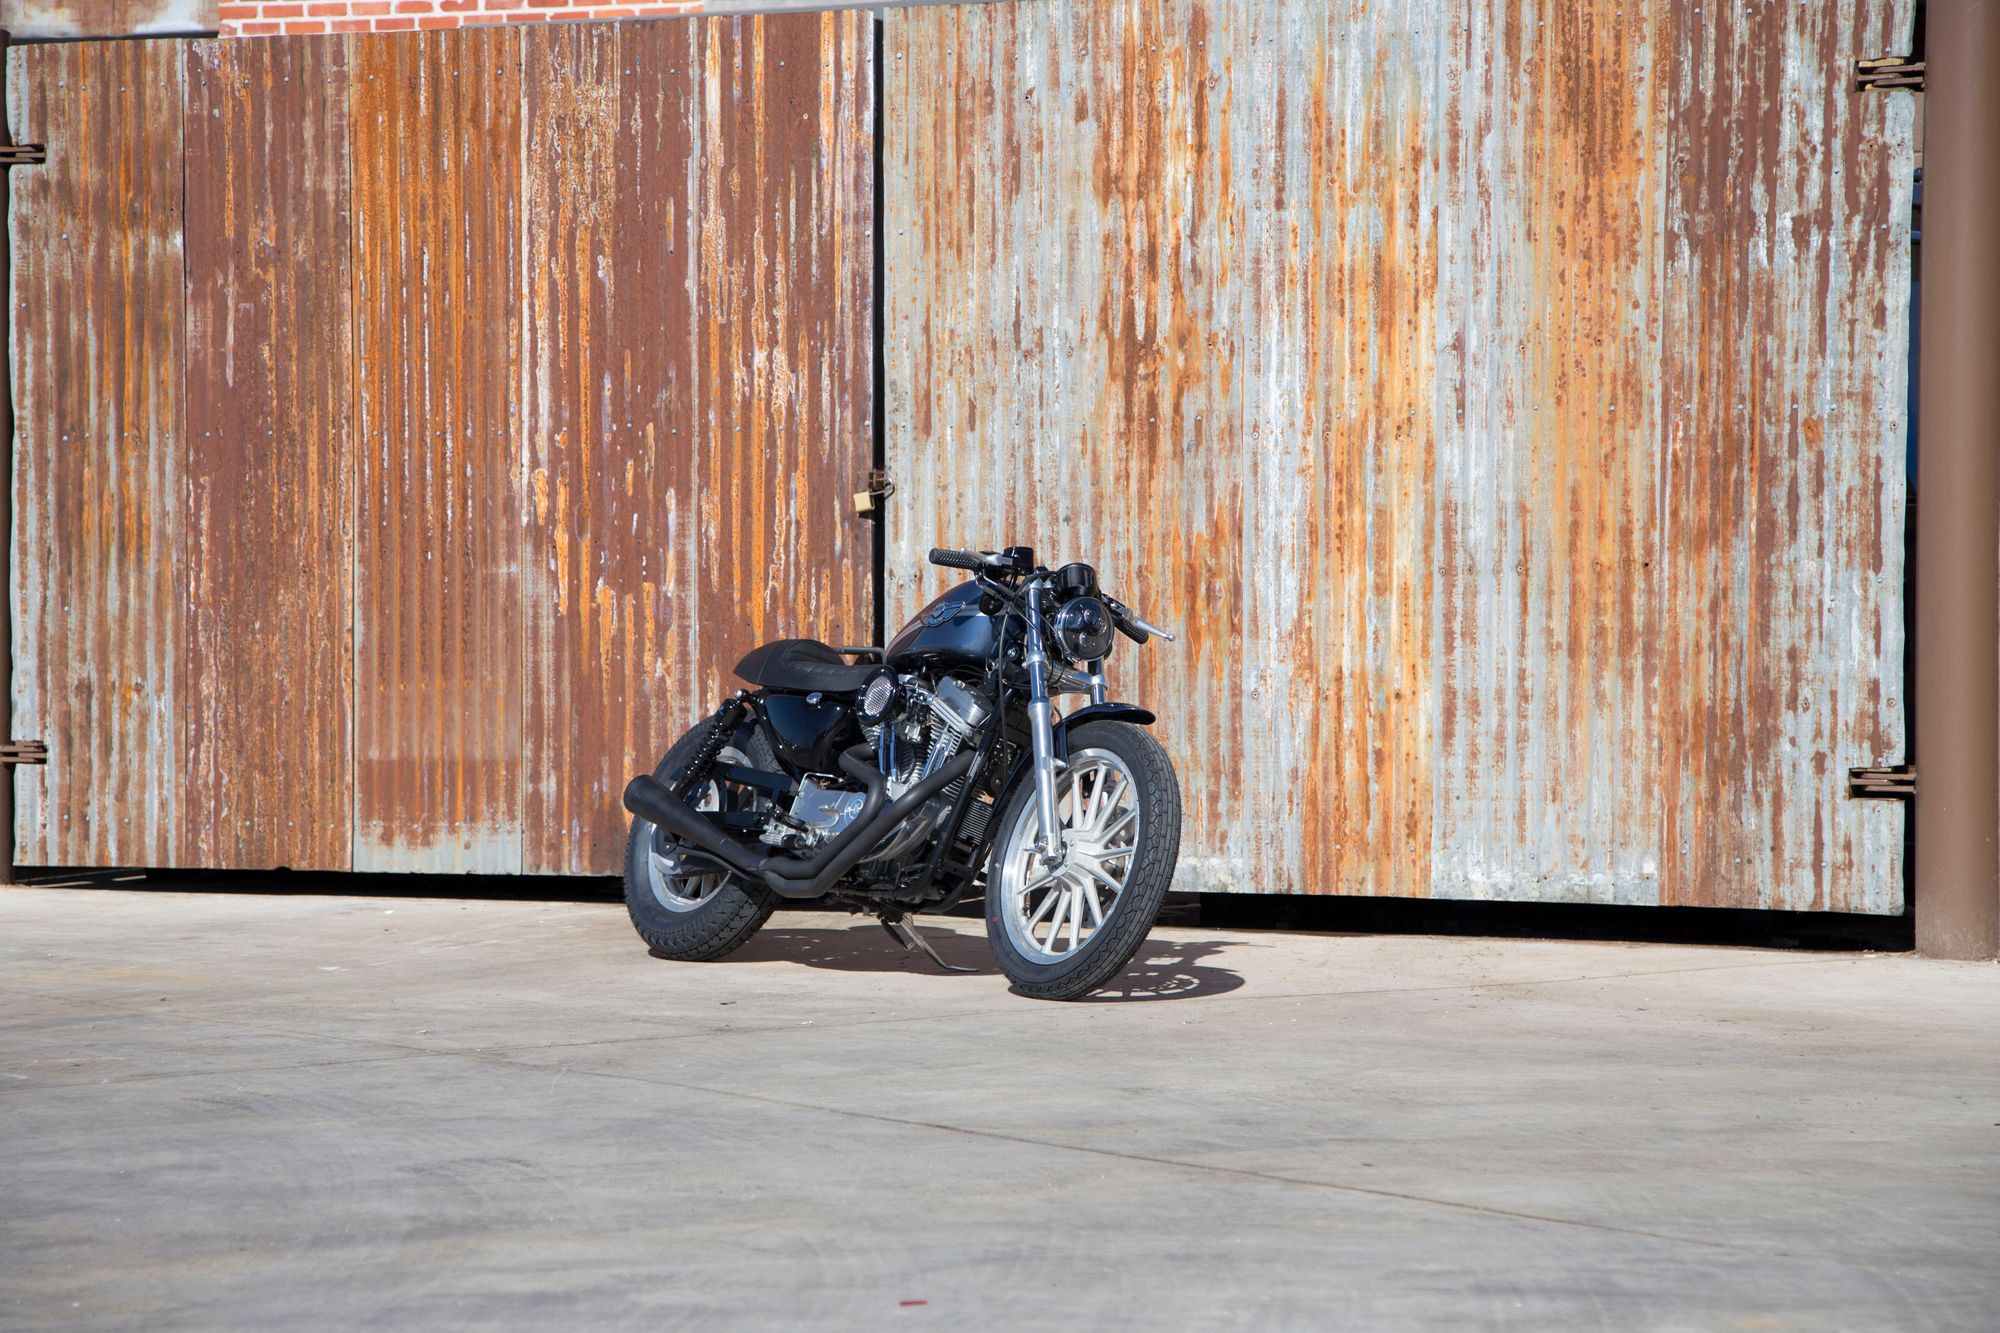 How to Turn a Harley-Davidson Sportster Into a Cafe Racer on